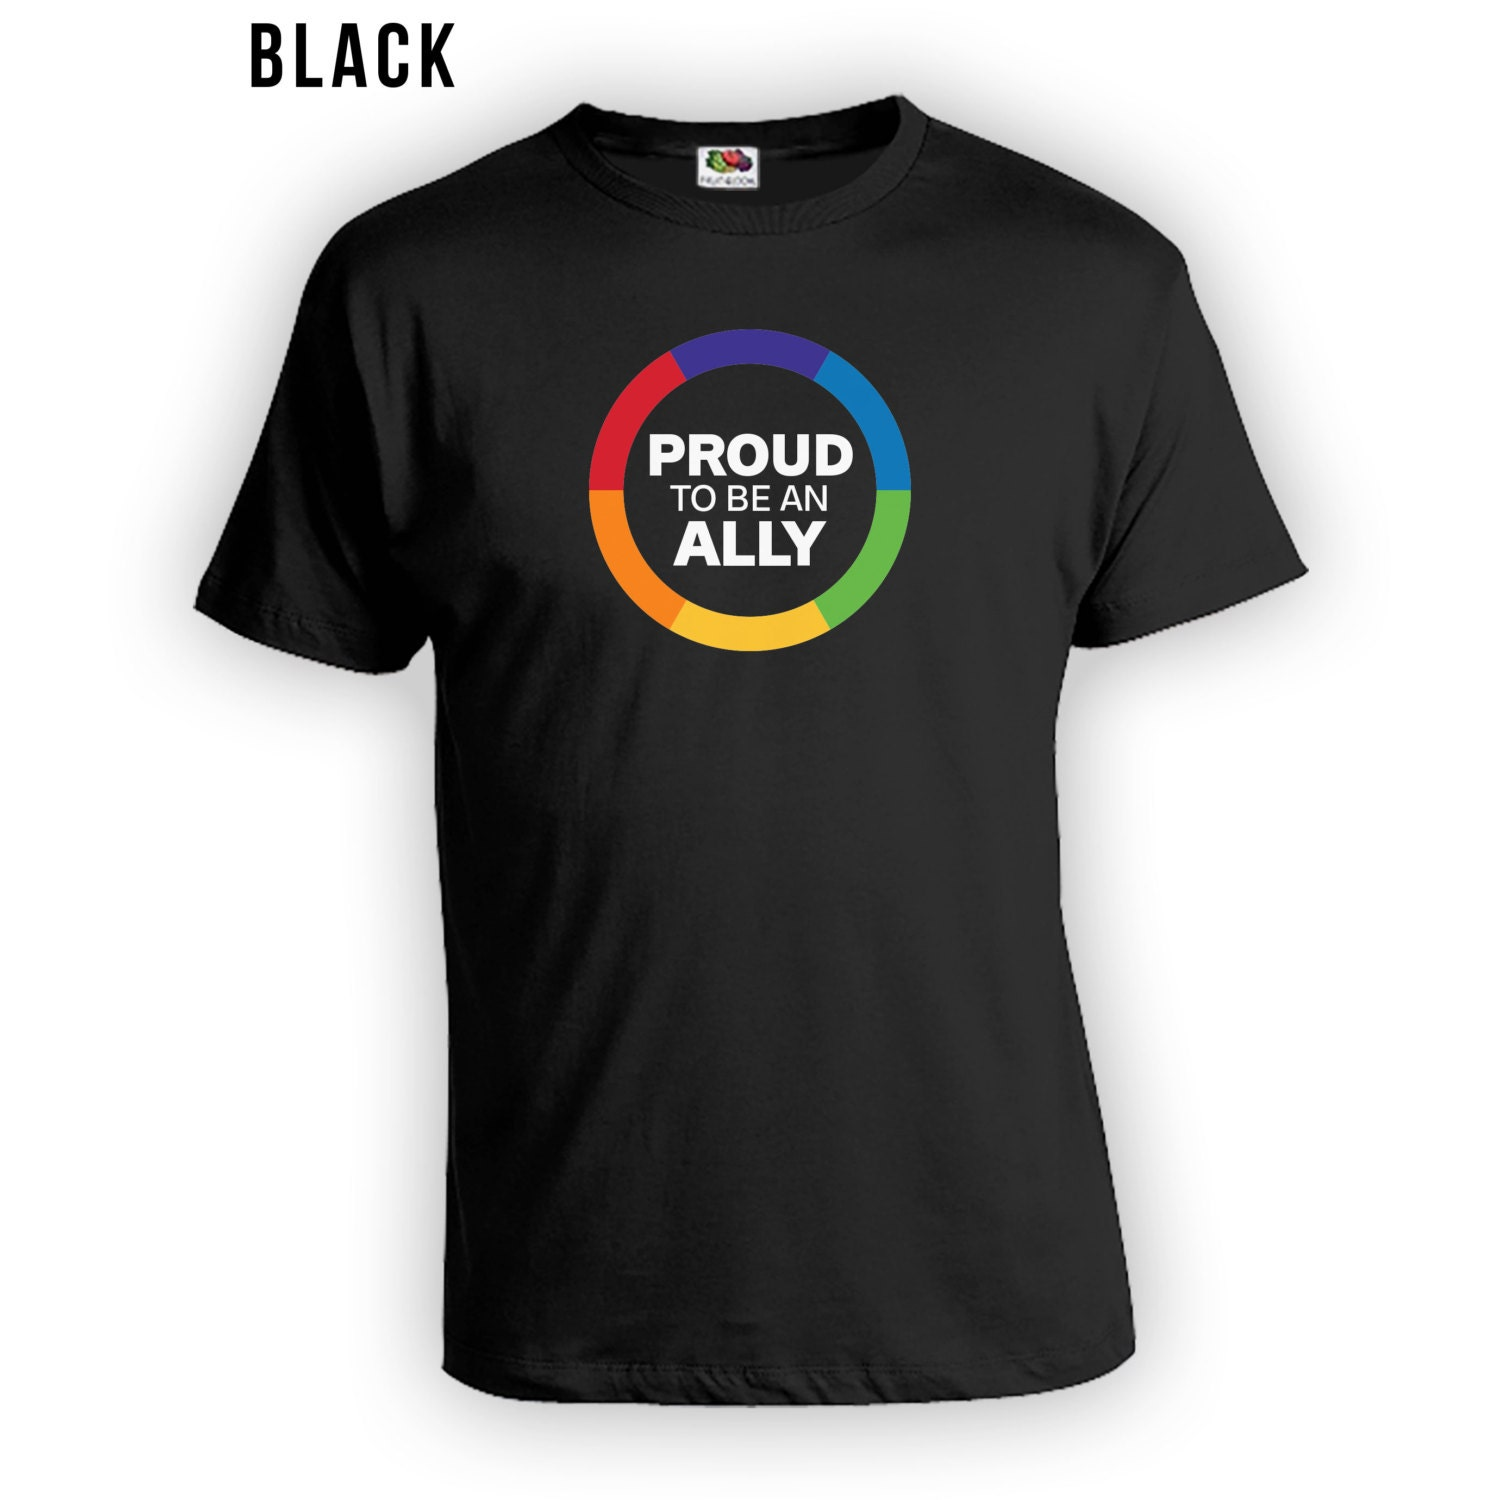 proud to be an ally shirt for gay pride month gay pride ally